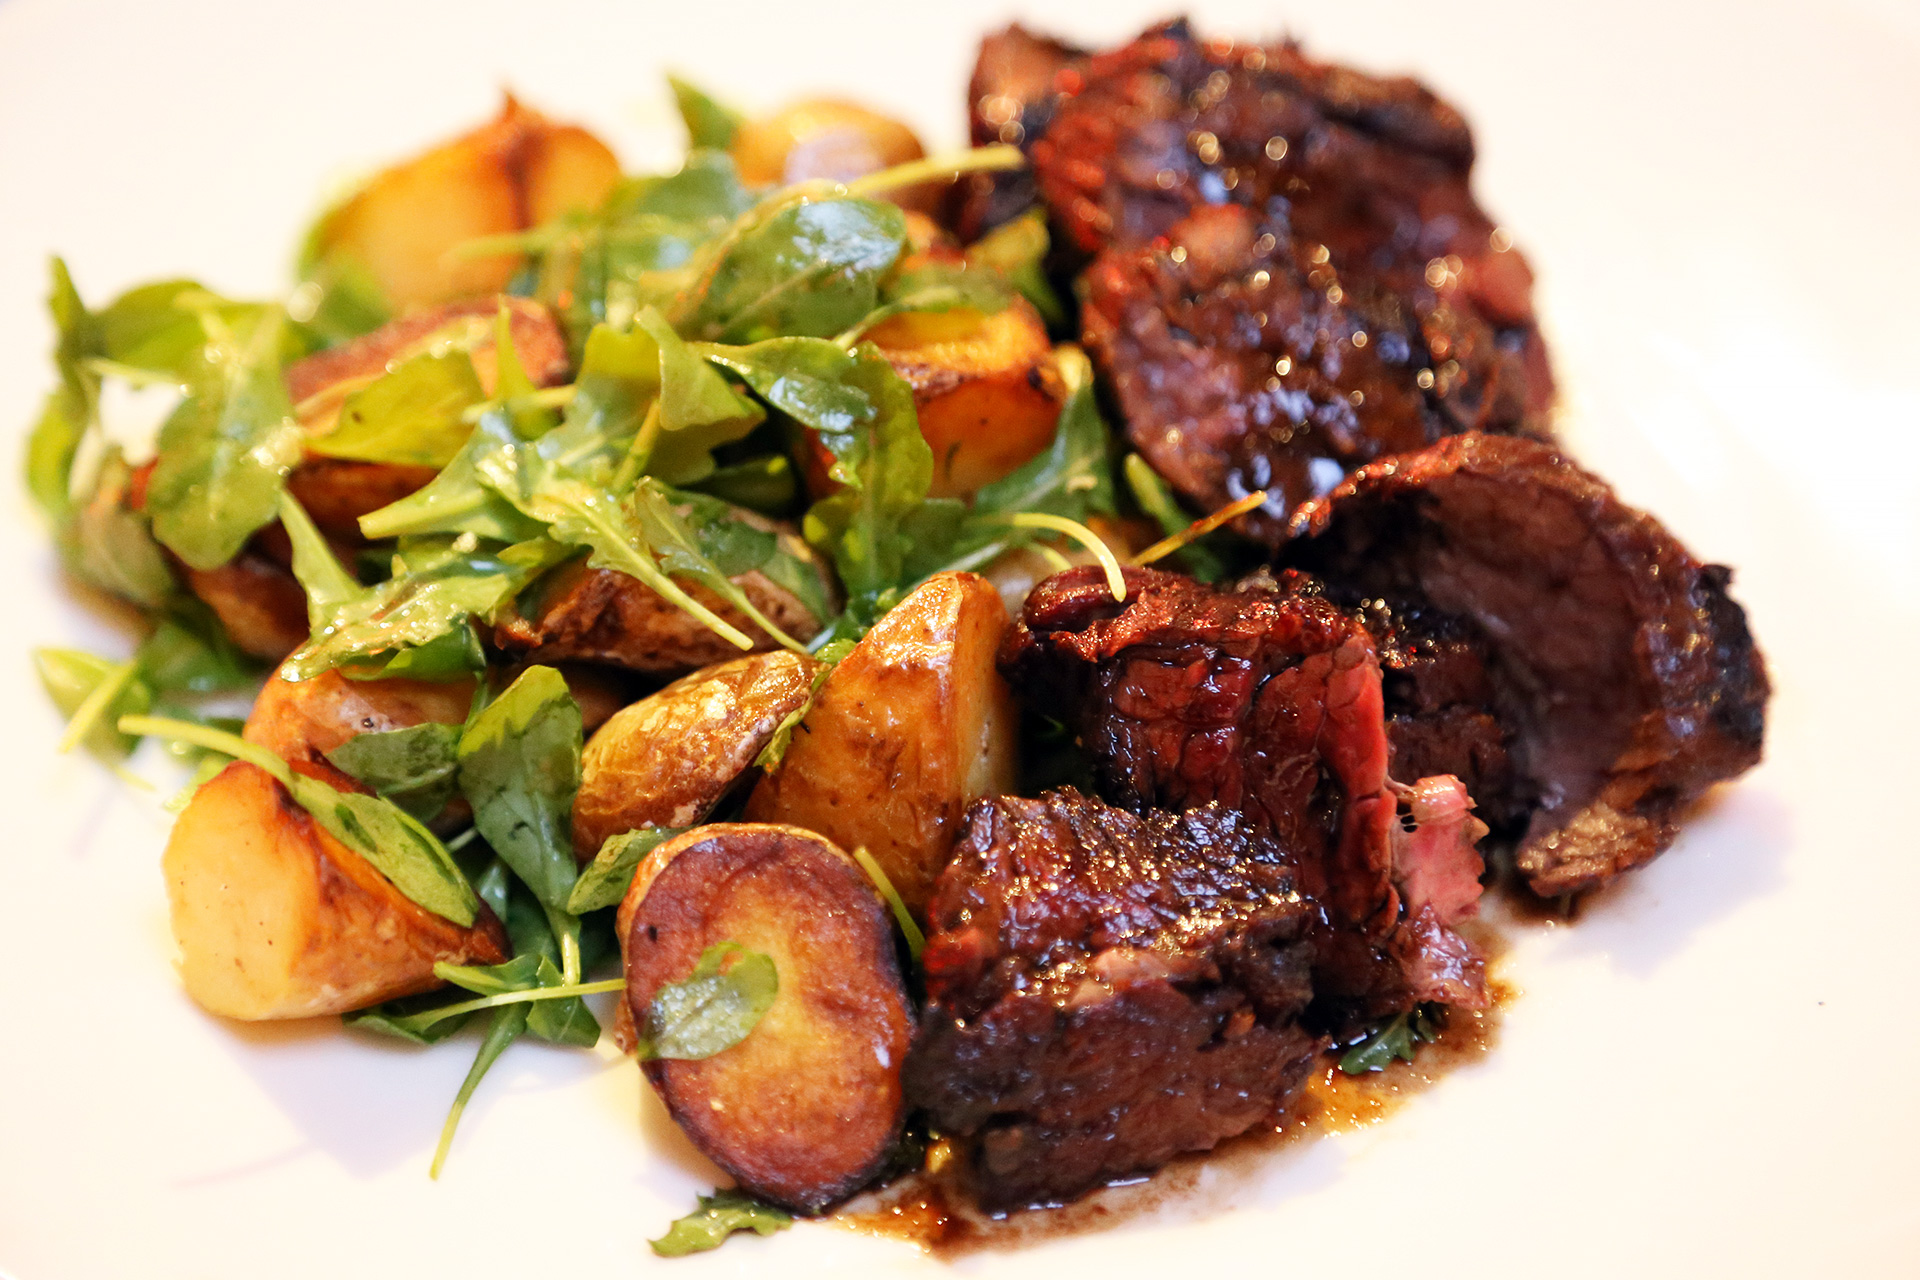 Medium-rare hanger steak with fingerling potatoes and a baby arugula salad.